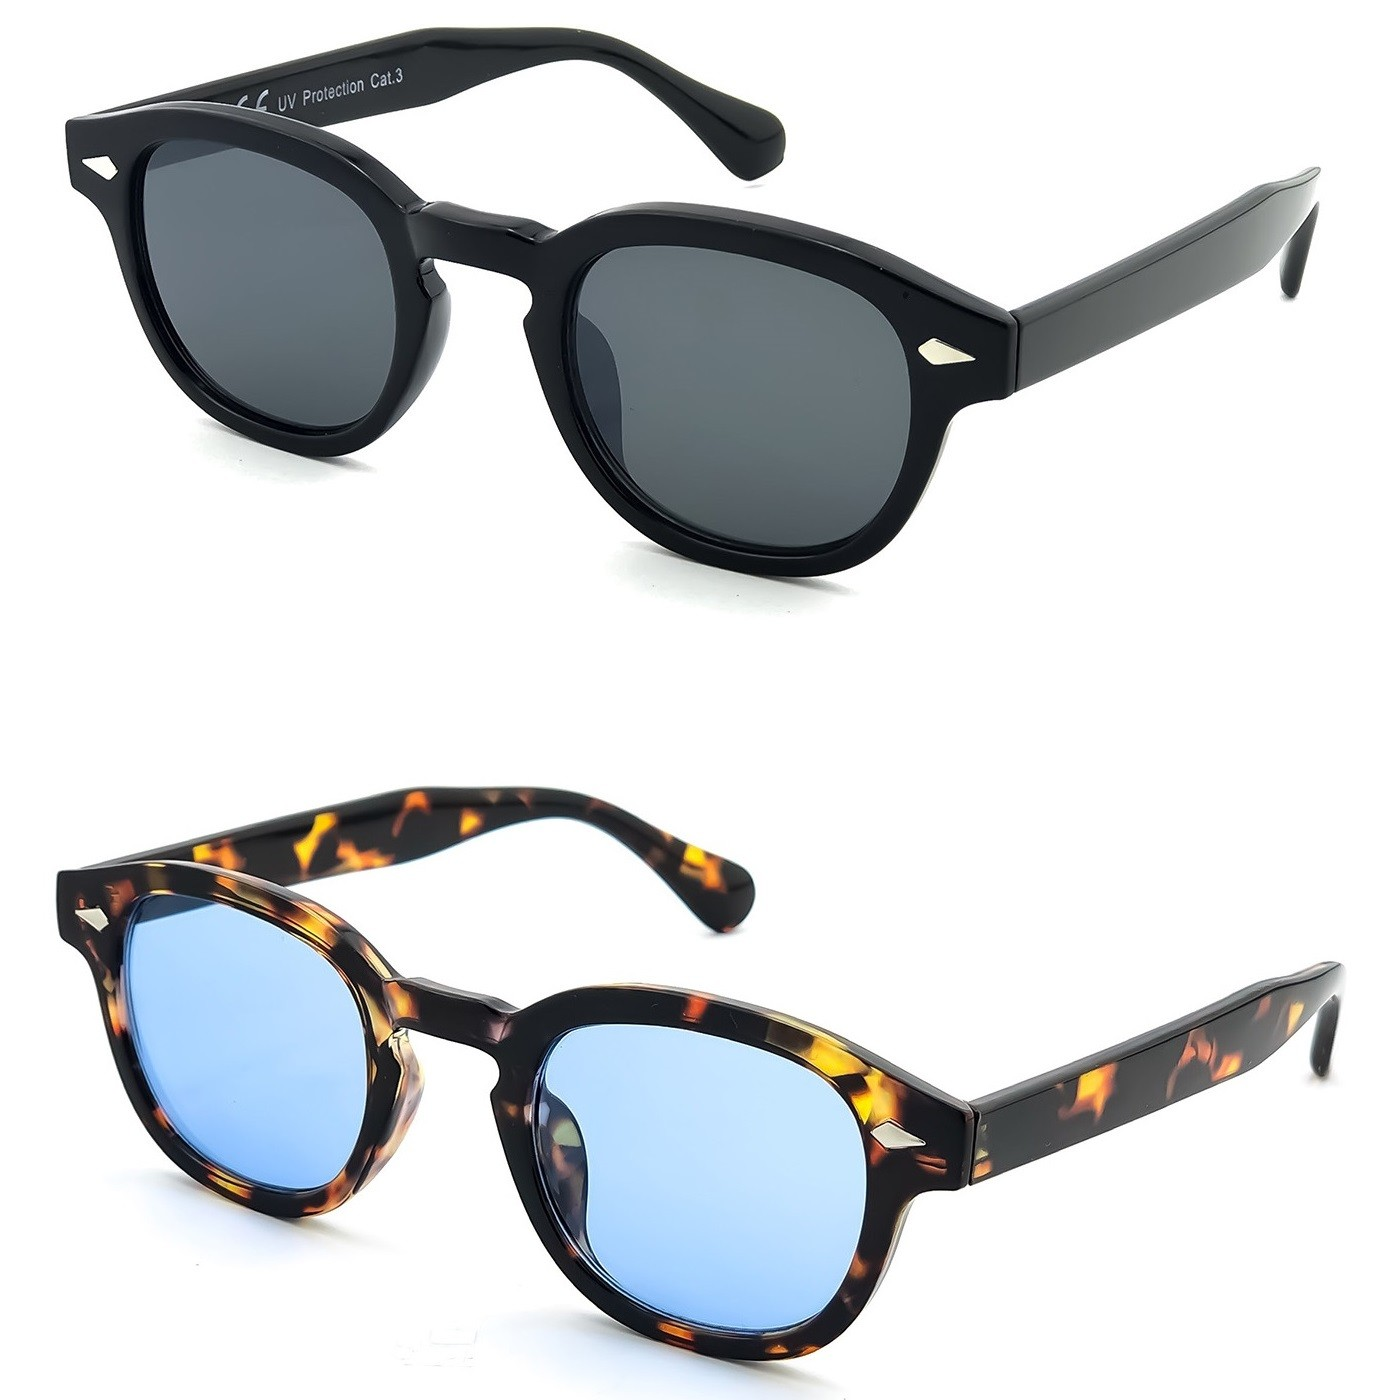 Sunglasses KISS® - style MOSCOT mod. DEPP ICONIC - Johnny Depp man woman VINTAGE unisex - Color : BLACK